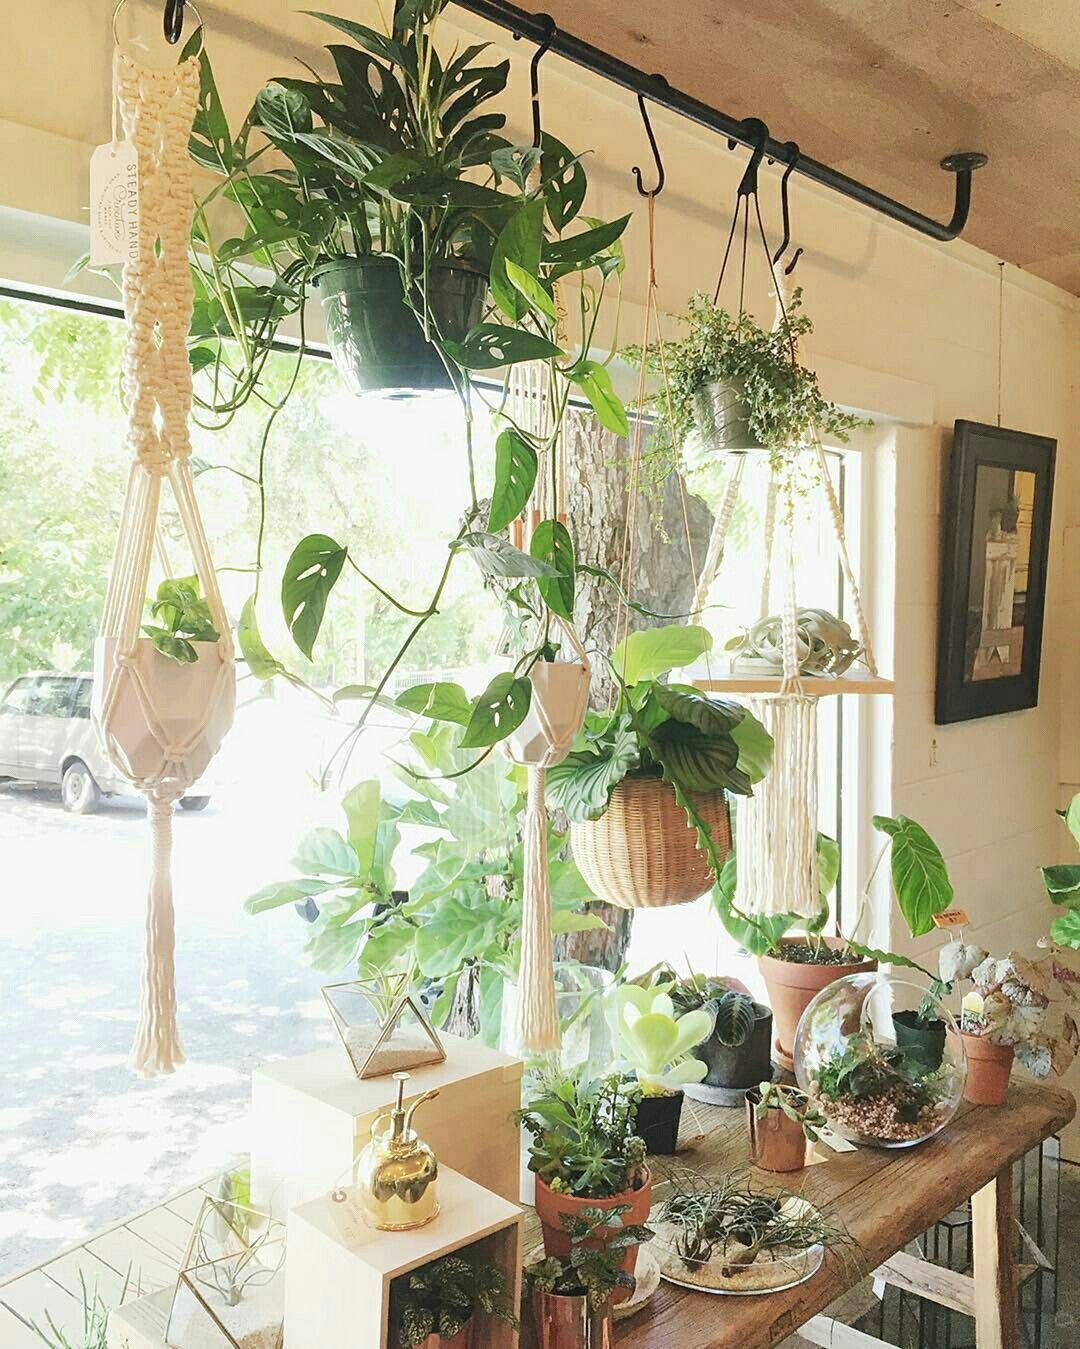 20 Diy Window Hanging Plants Ideas For Your Home Decoration In